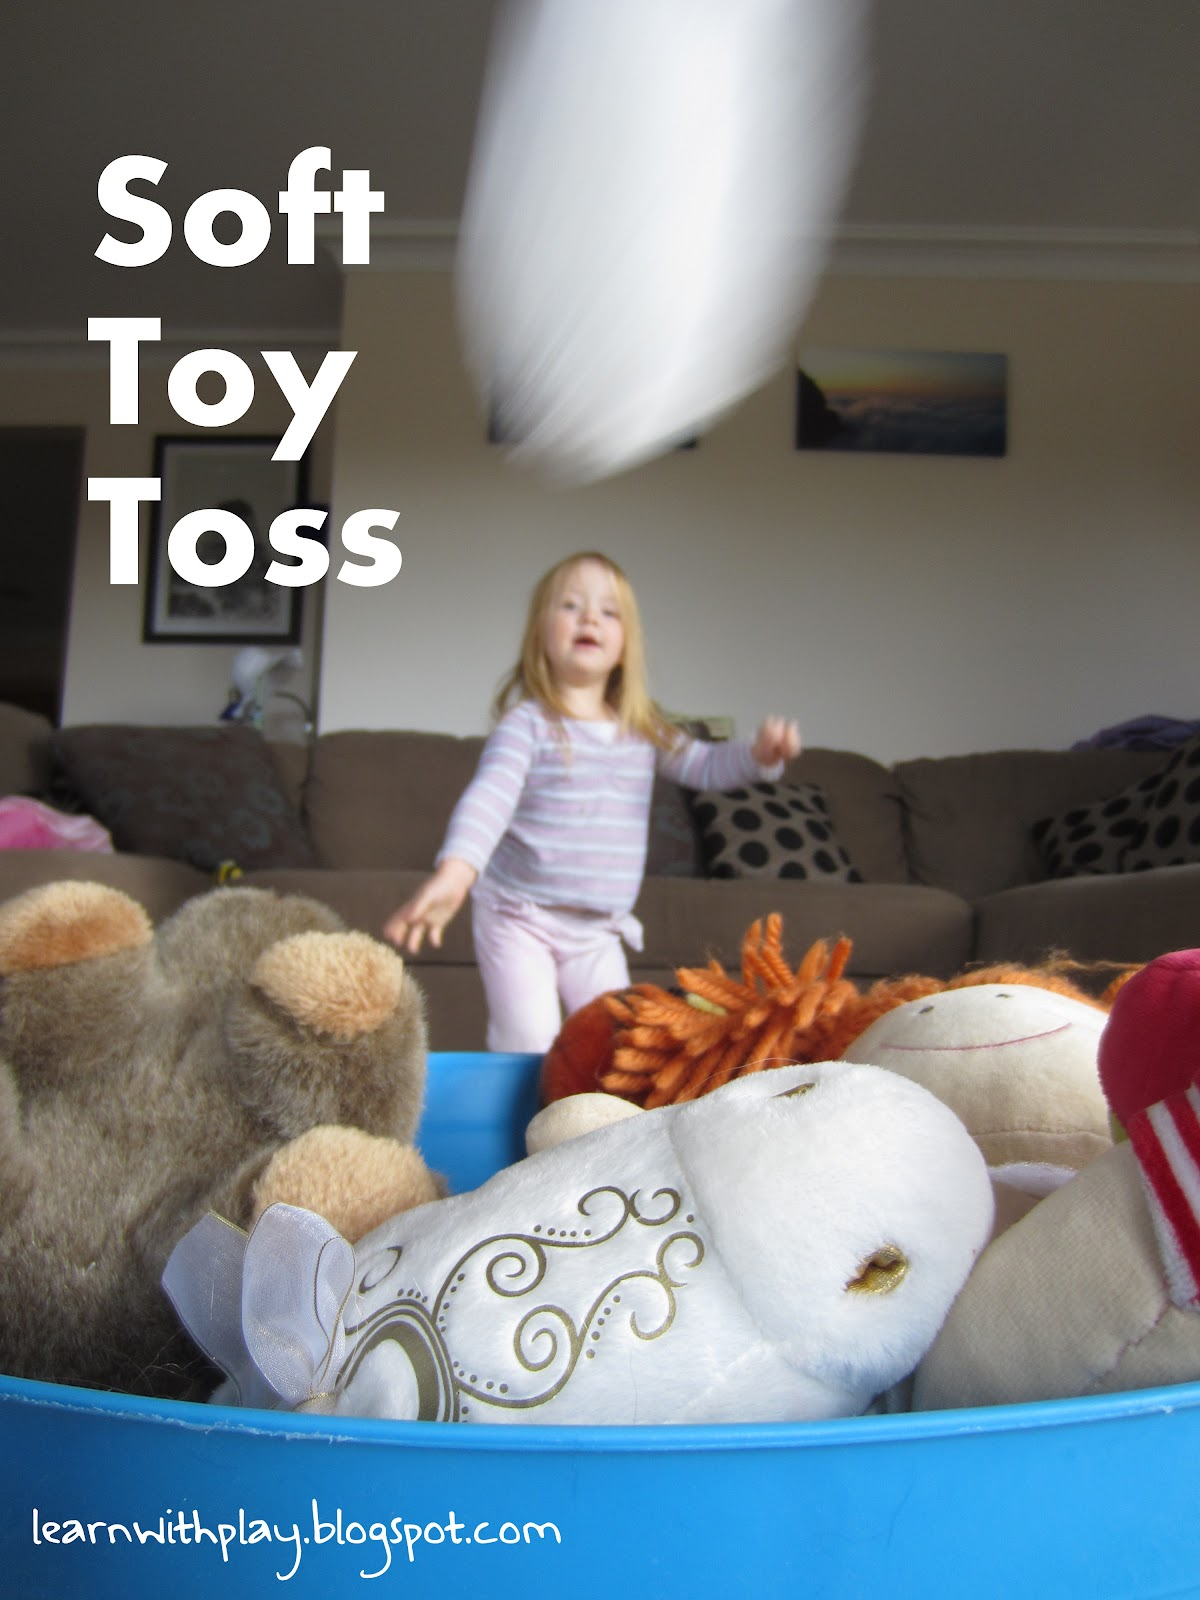 Game Toys To Practice : Learn with play at home soft toy toss